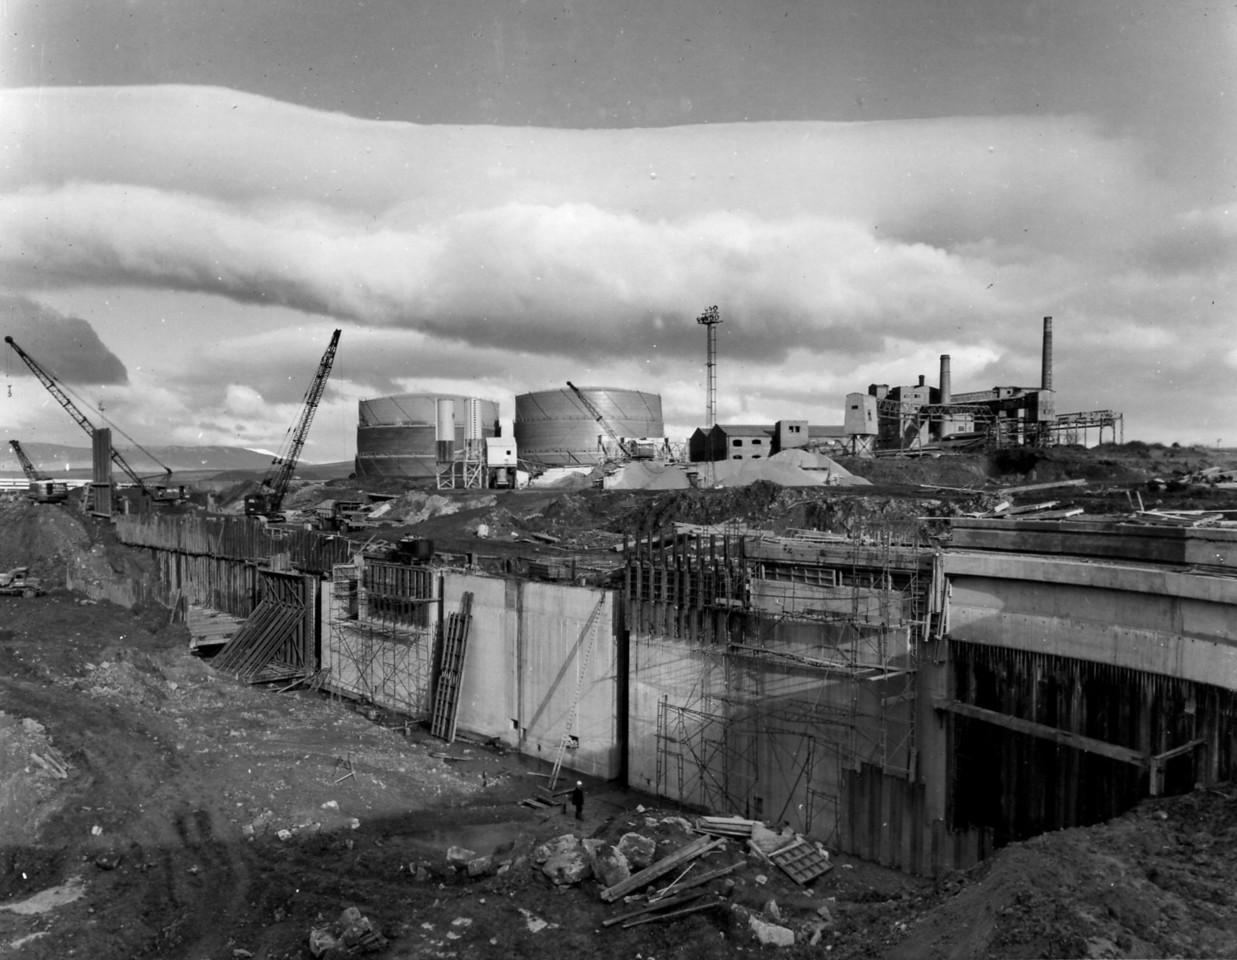 D066Dock wall and trench excavation - east side   31/12/1962